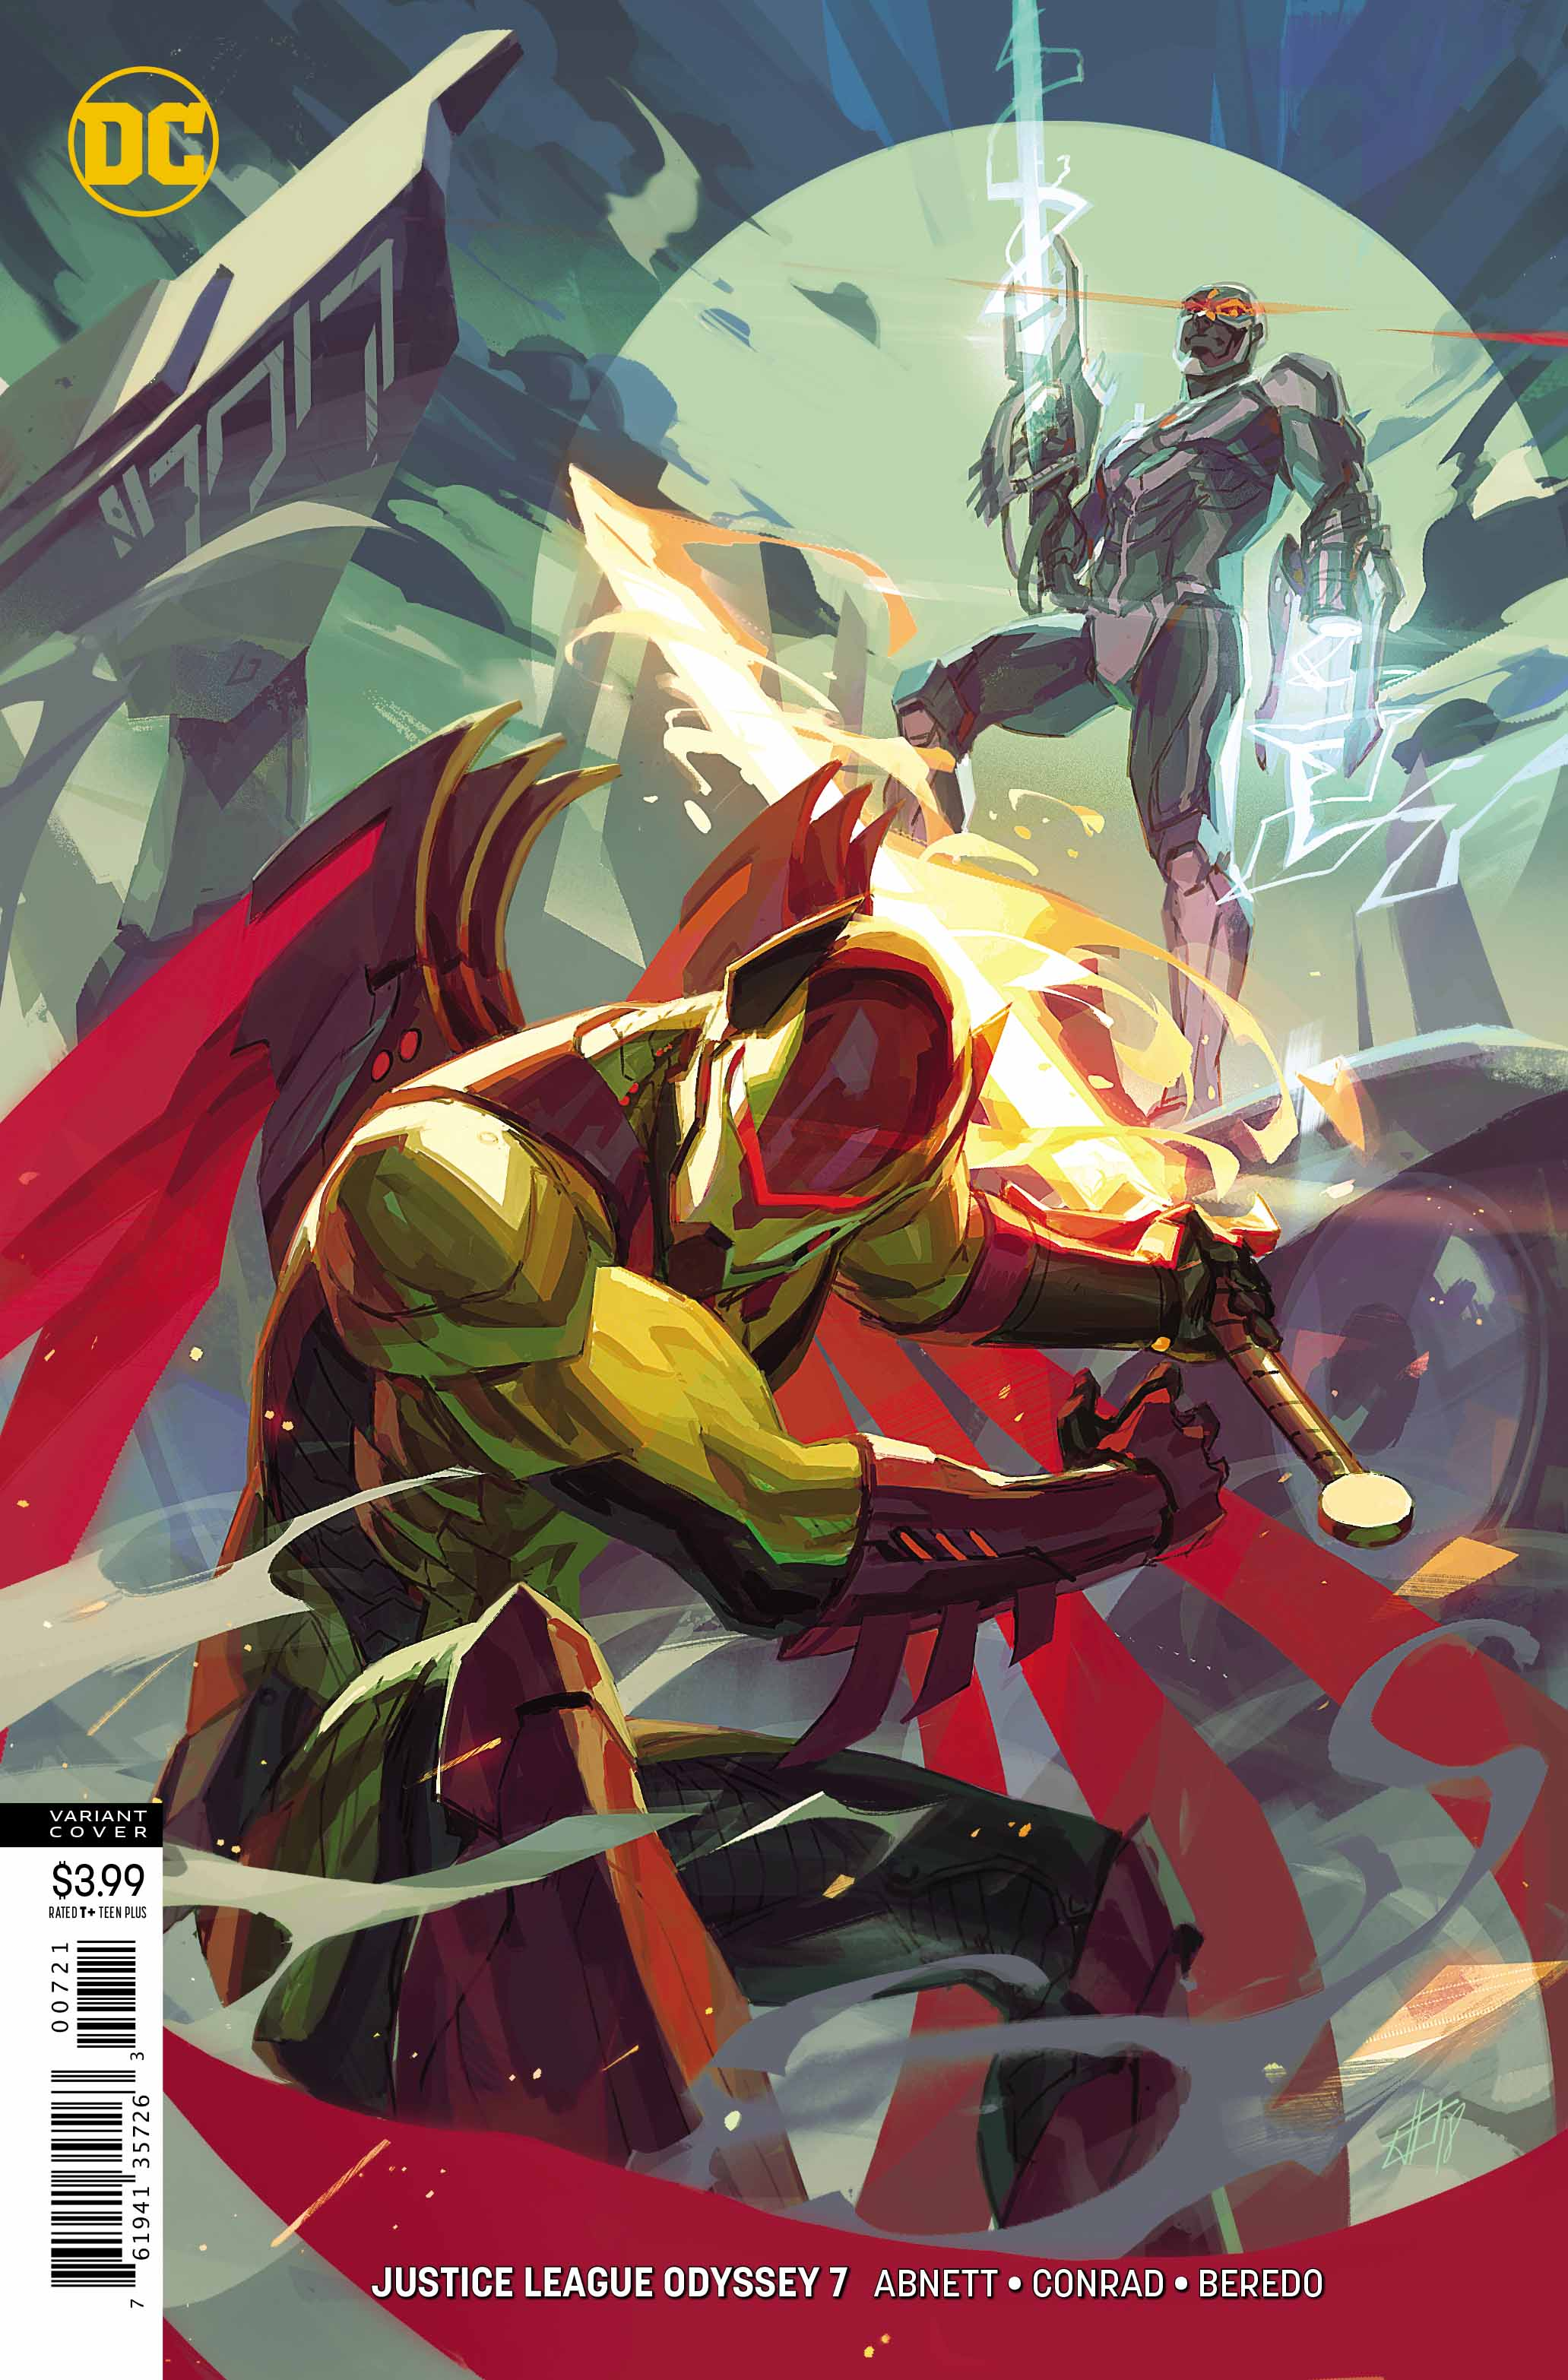 Justice League Odyssey #7 Review